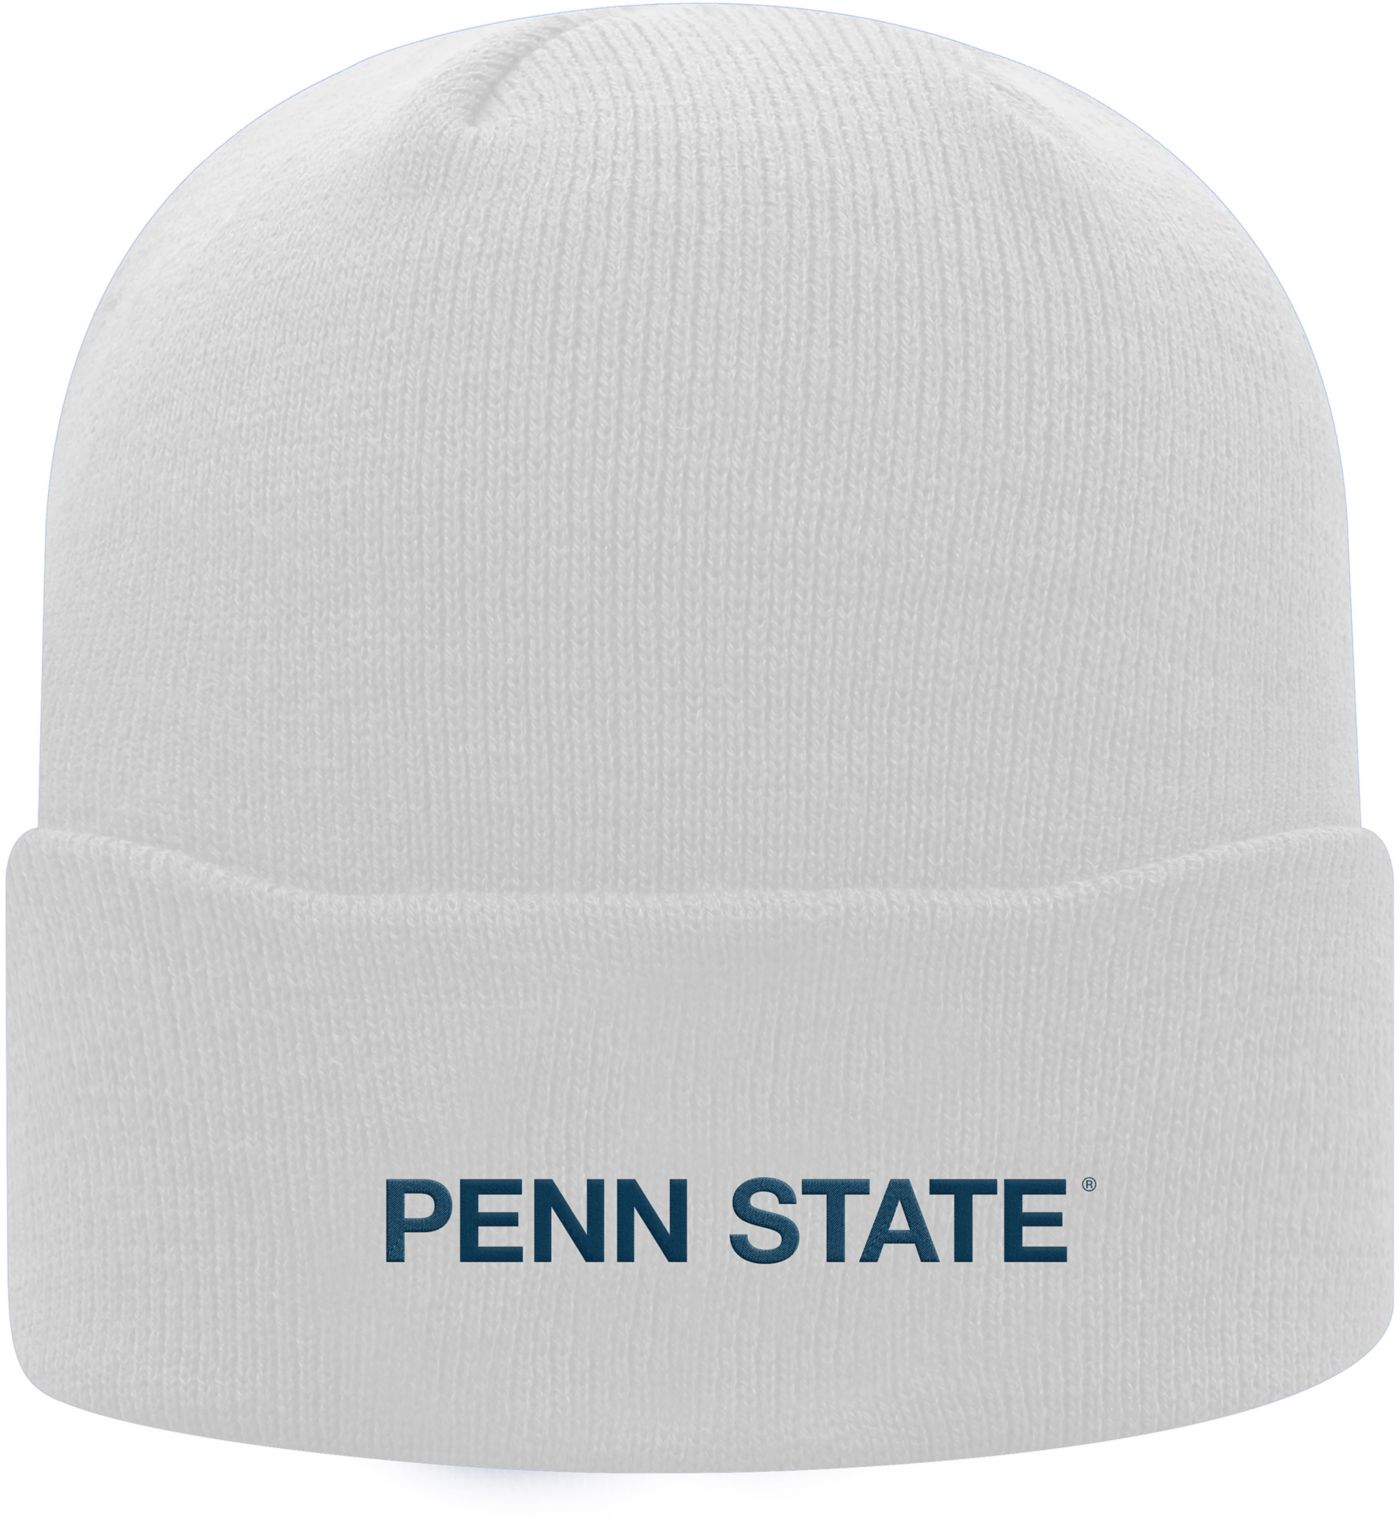 Top of the World Men's Penn State Nittany Lions Cuff Knit White Beanie